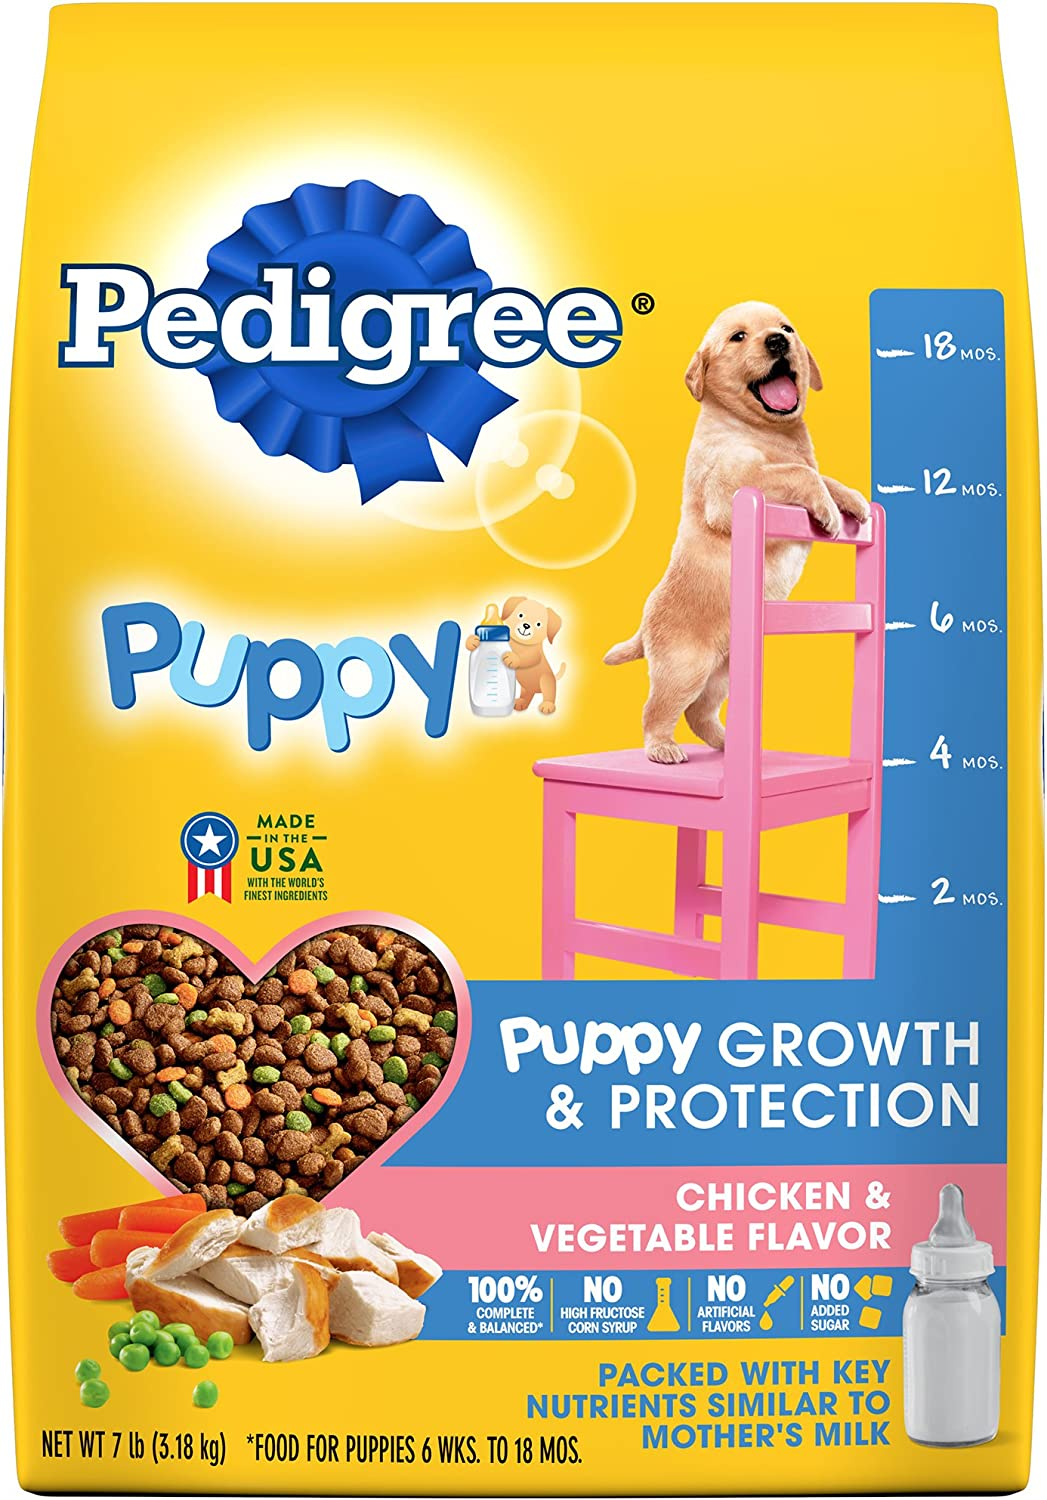 Pedigree Puppy Growth & Protection Dry Dog Food Chicken & Vegetable Flavor, 7 Lb. Bag